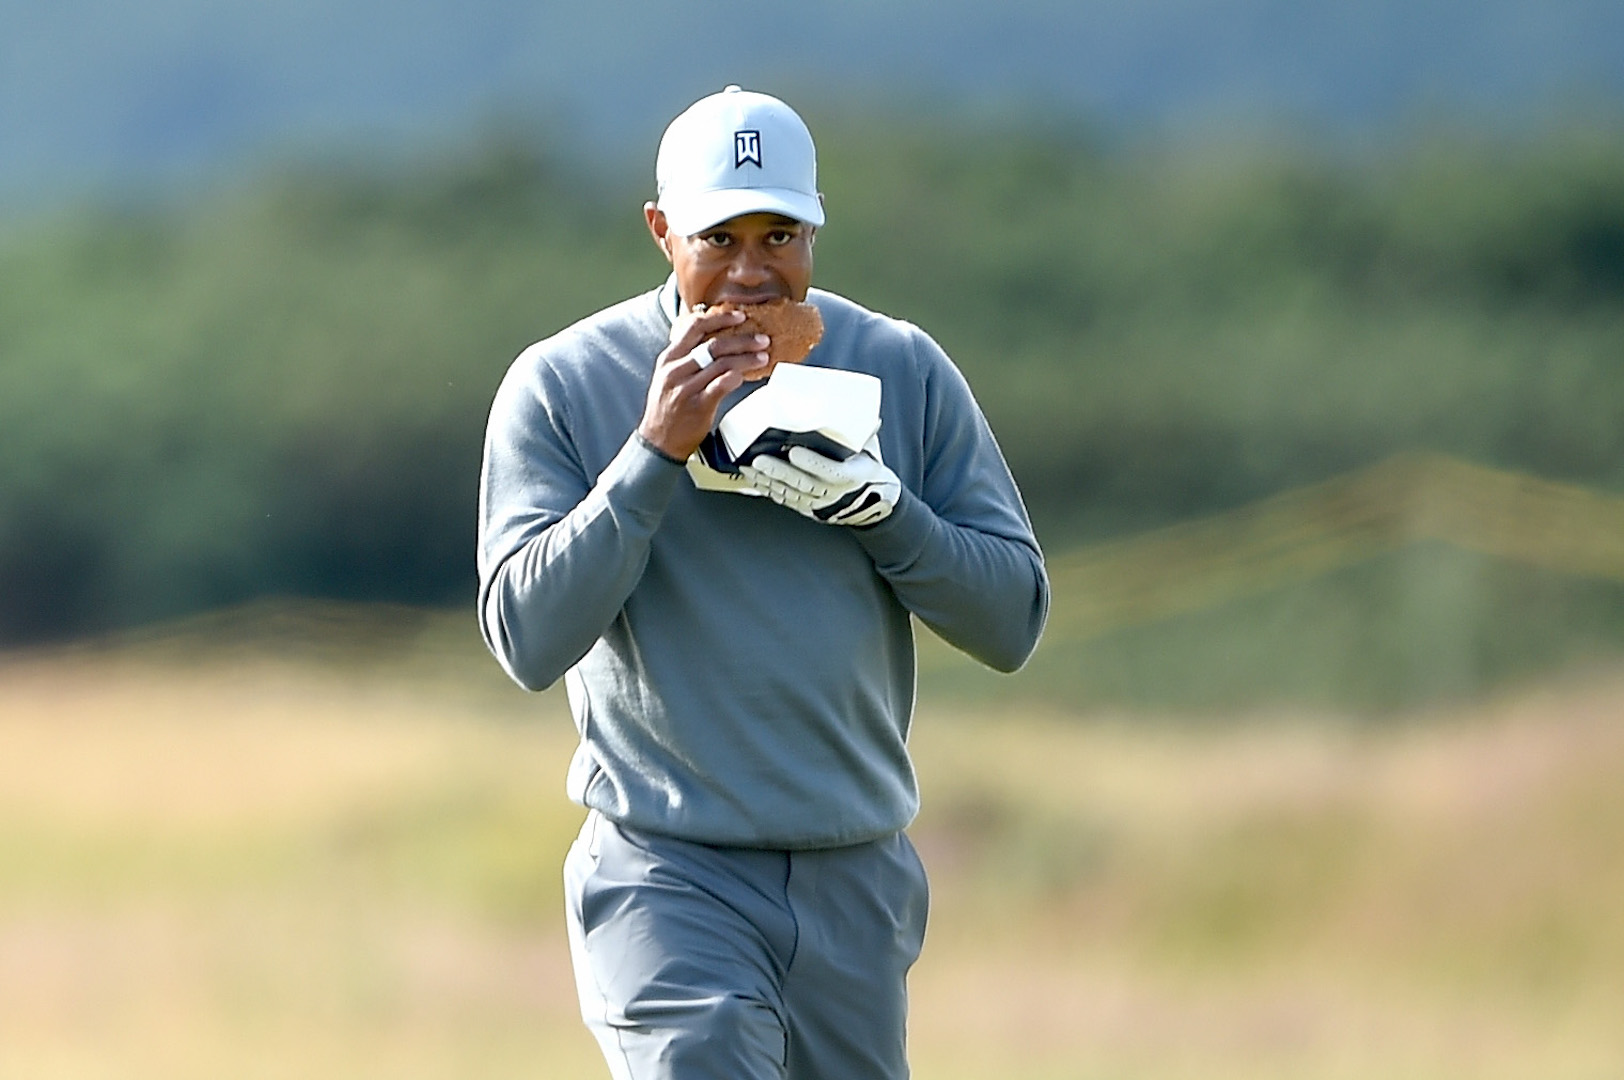 Is this the world's slowest golfer?